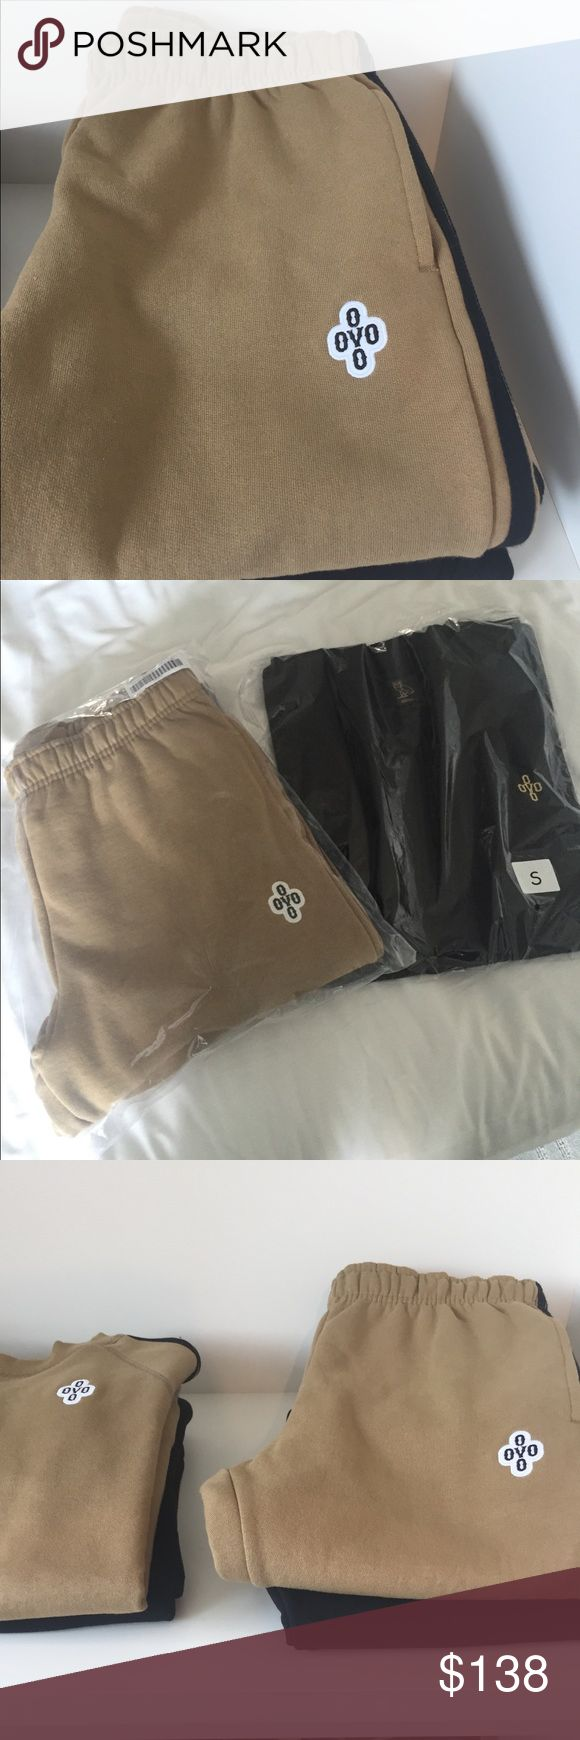 OVO Pants Drake. Brand new never worn! Bought at OVO store in Toronto you can't find these anywhere they are super rare and sold out Pants